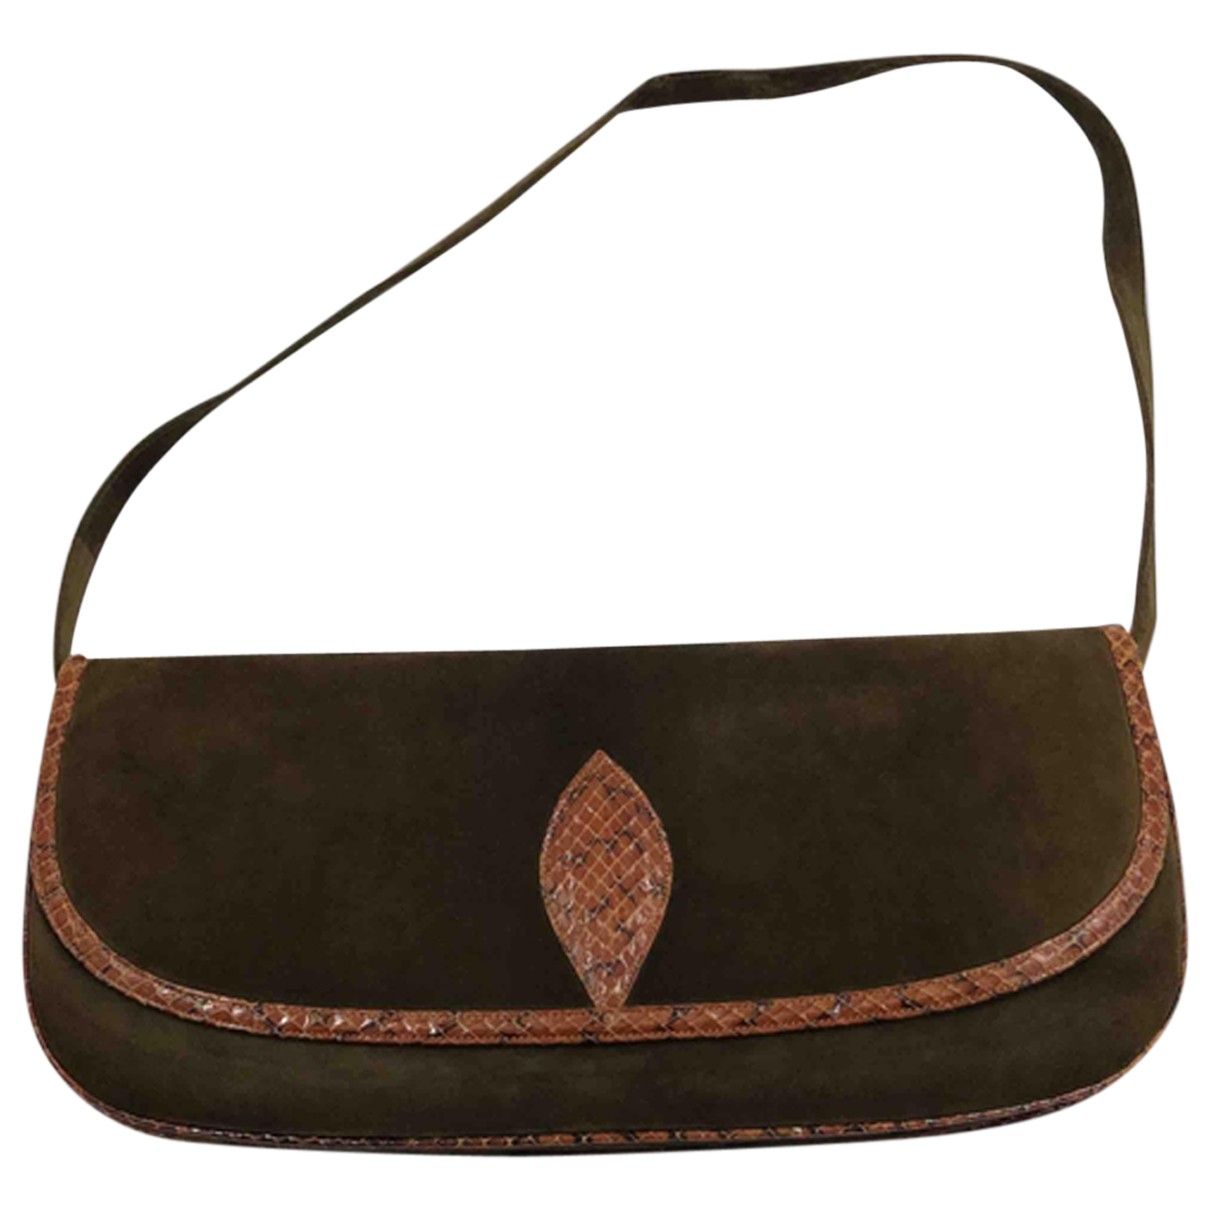 Bruno Magli \N Khaki Velvet handbag for Women \N